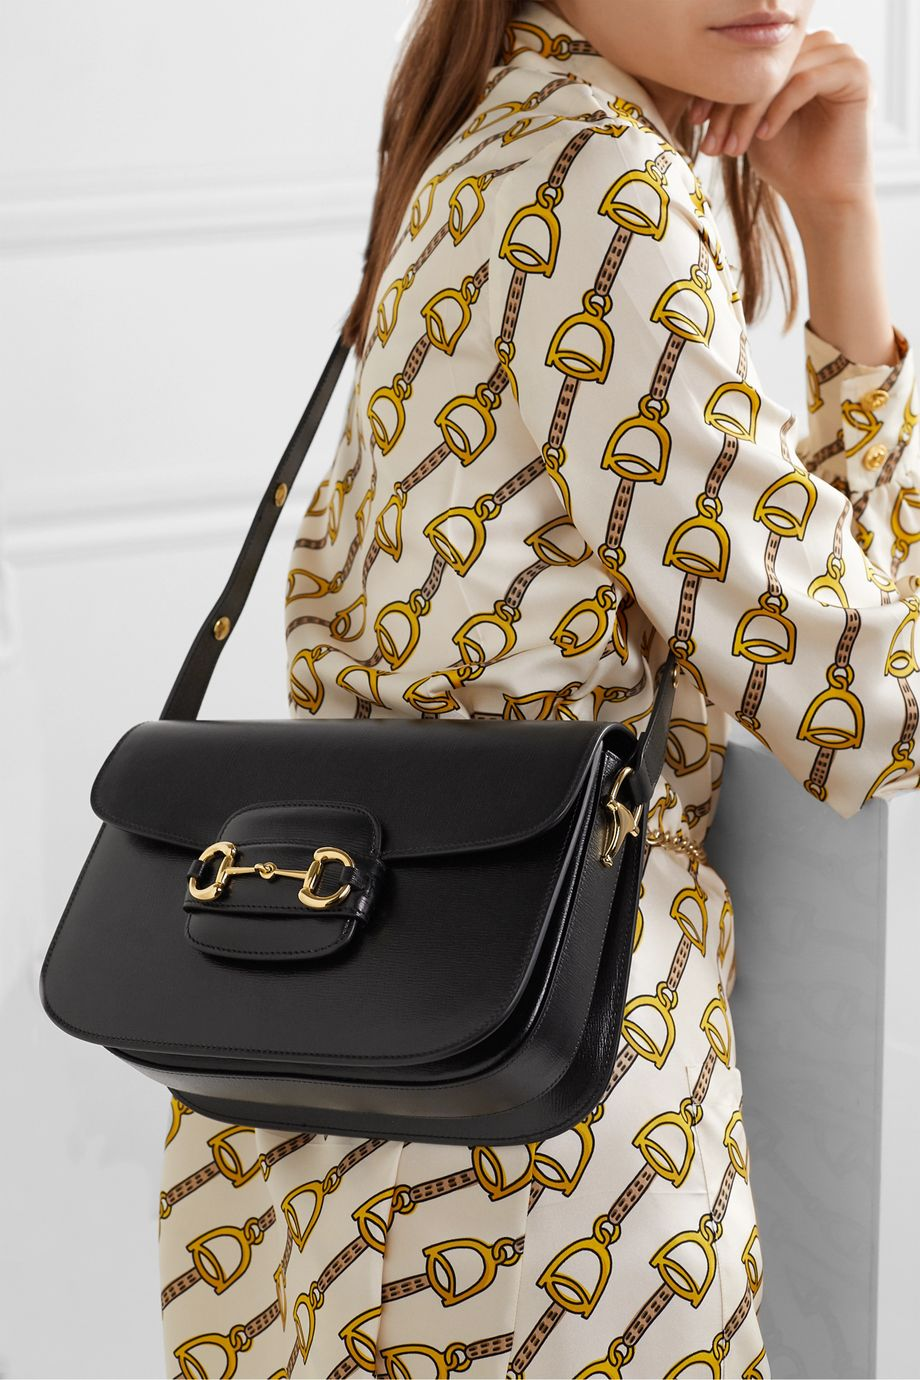 a-timeless-classic-icon-gucci-1955-horsebit-bag_herstylecode